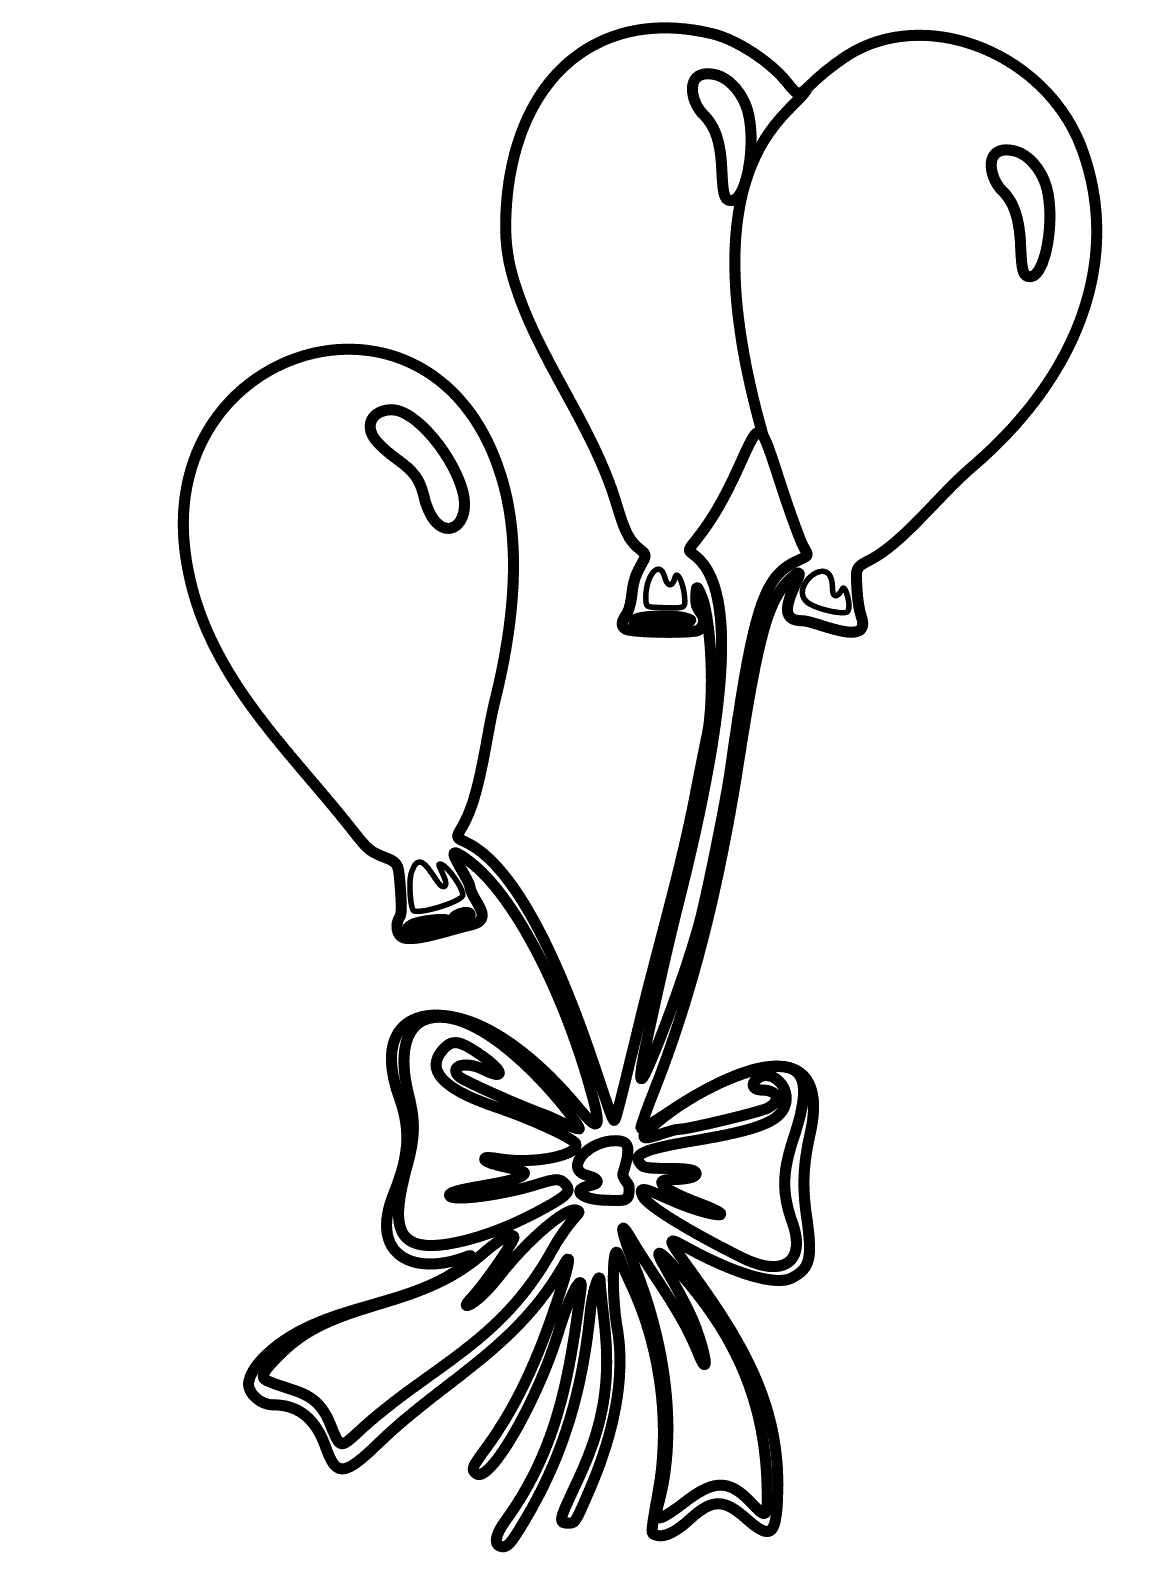 coloring balloon balloon coloring pages coloring pages to download and print balloon coloring